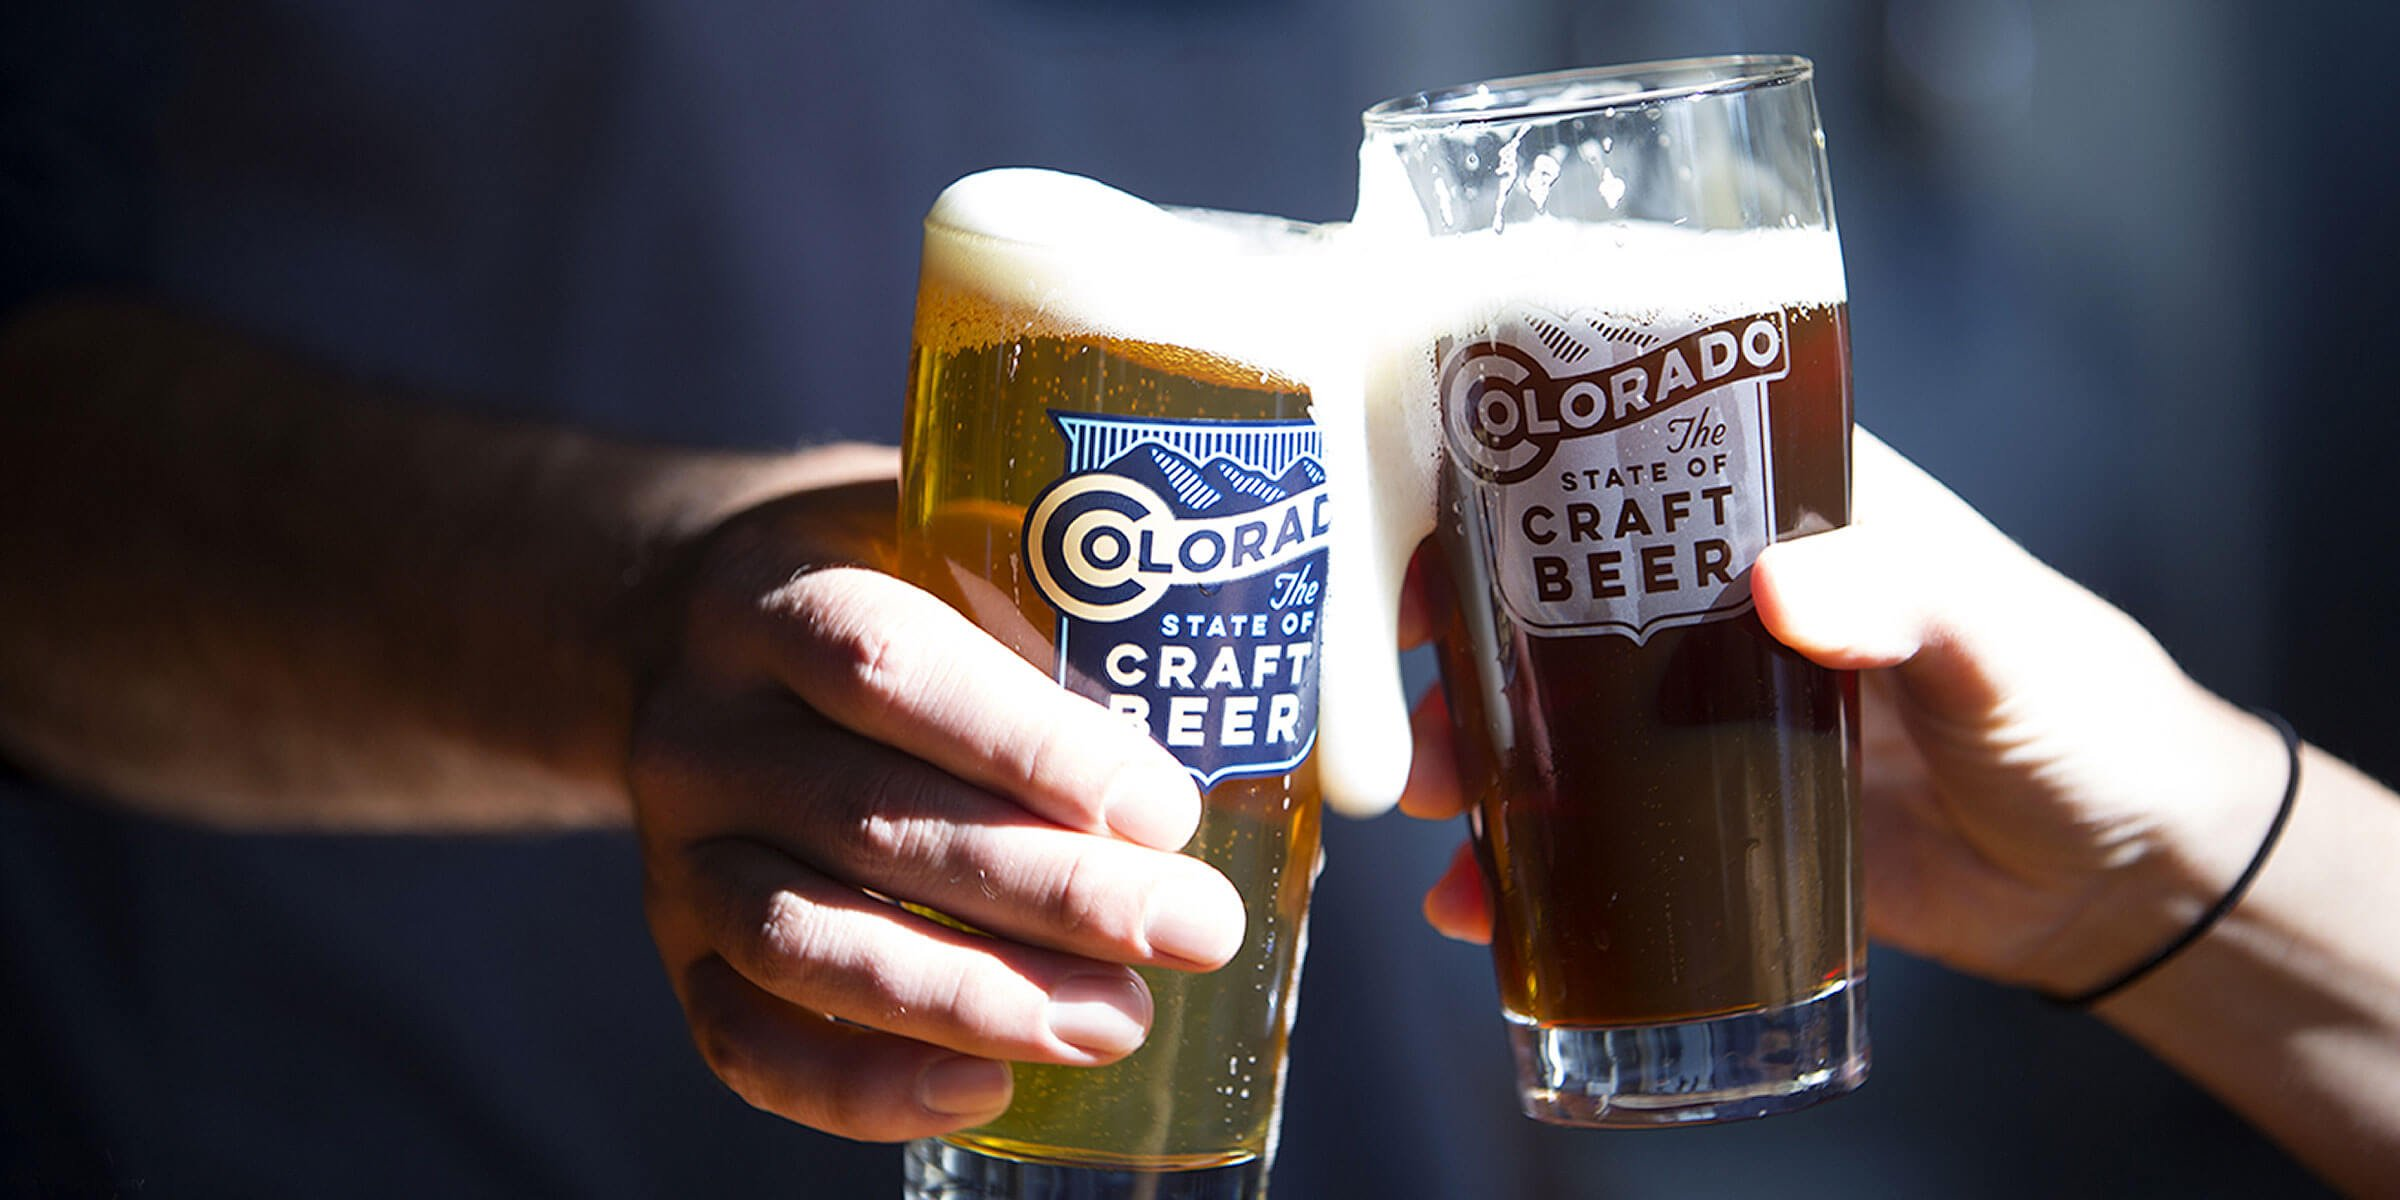 """Two people toasting with beers in """"The State of Craft Beer"""" branded Willi Becher pint glasses from the Colorado Brewers Guild"""